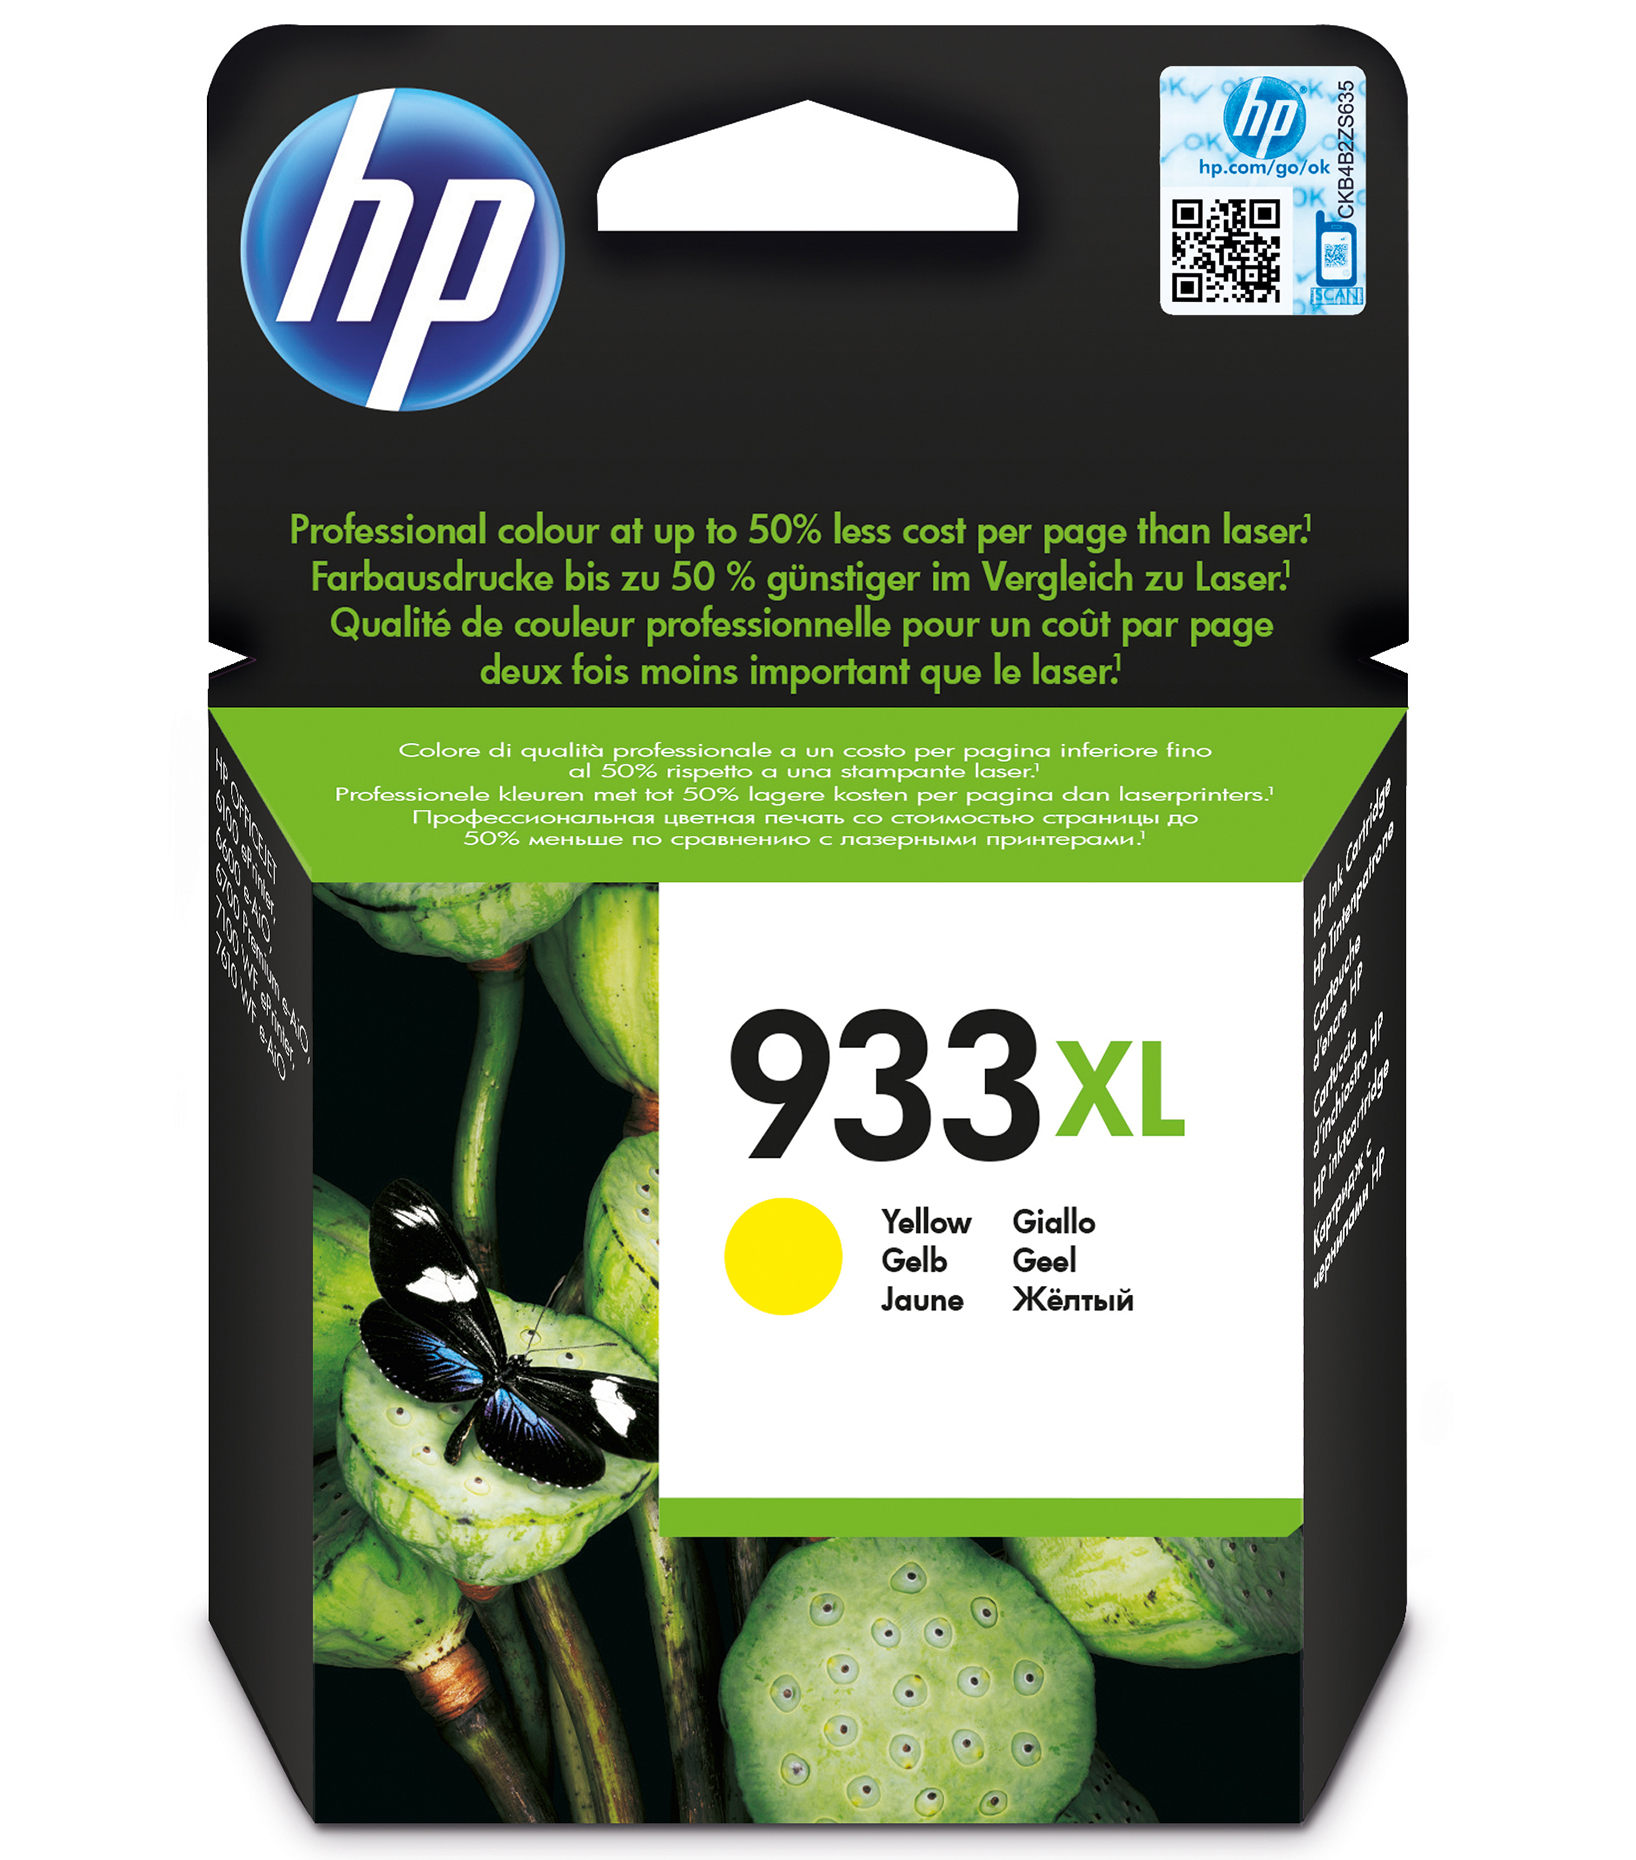 CN056AE#BGX Hp HP 933XL - High Yield - Yellow - Original - Ink Cartridge - For Officejet 6100, 6600 H711a, 6700, 7110, 7612 - C2000